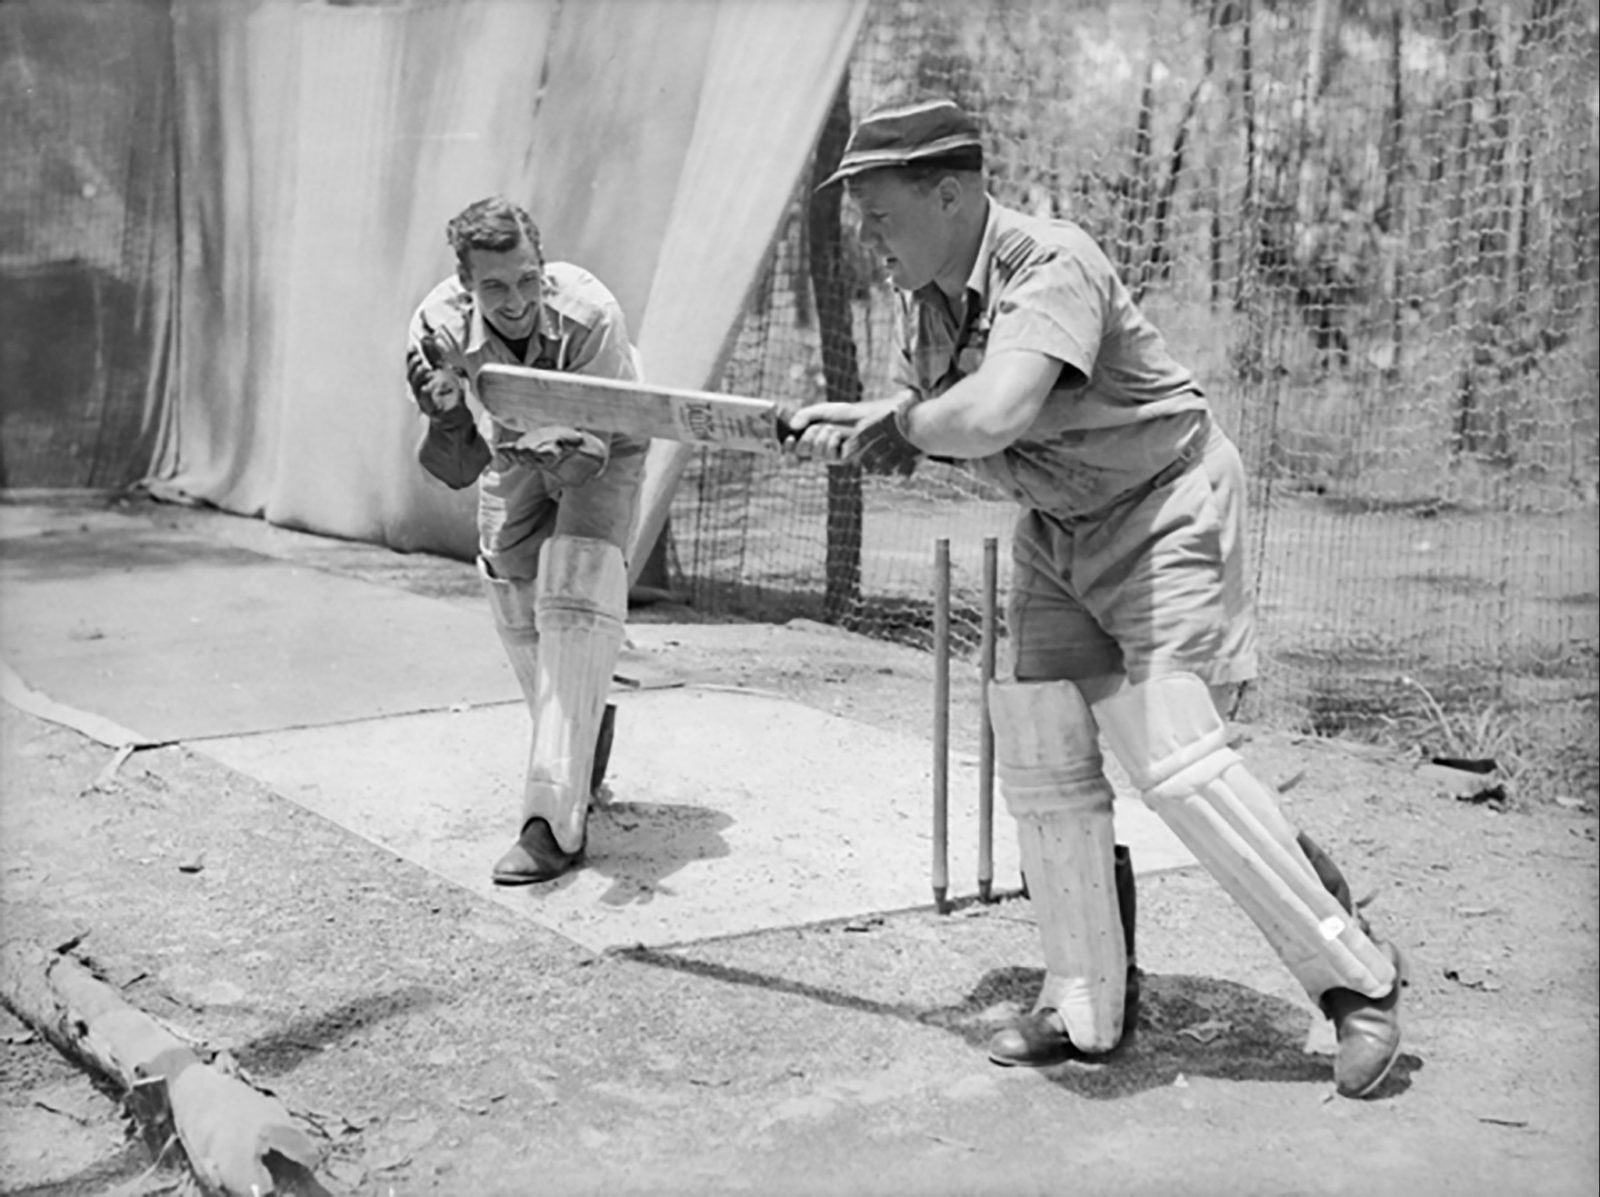 1943 - Sqn Leader Bluey Truscott batting, Flying Officer EB Tainton keeping.